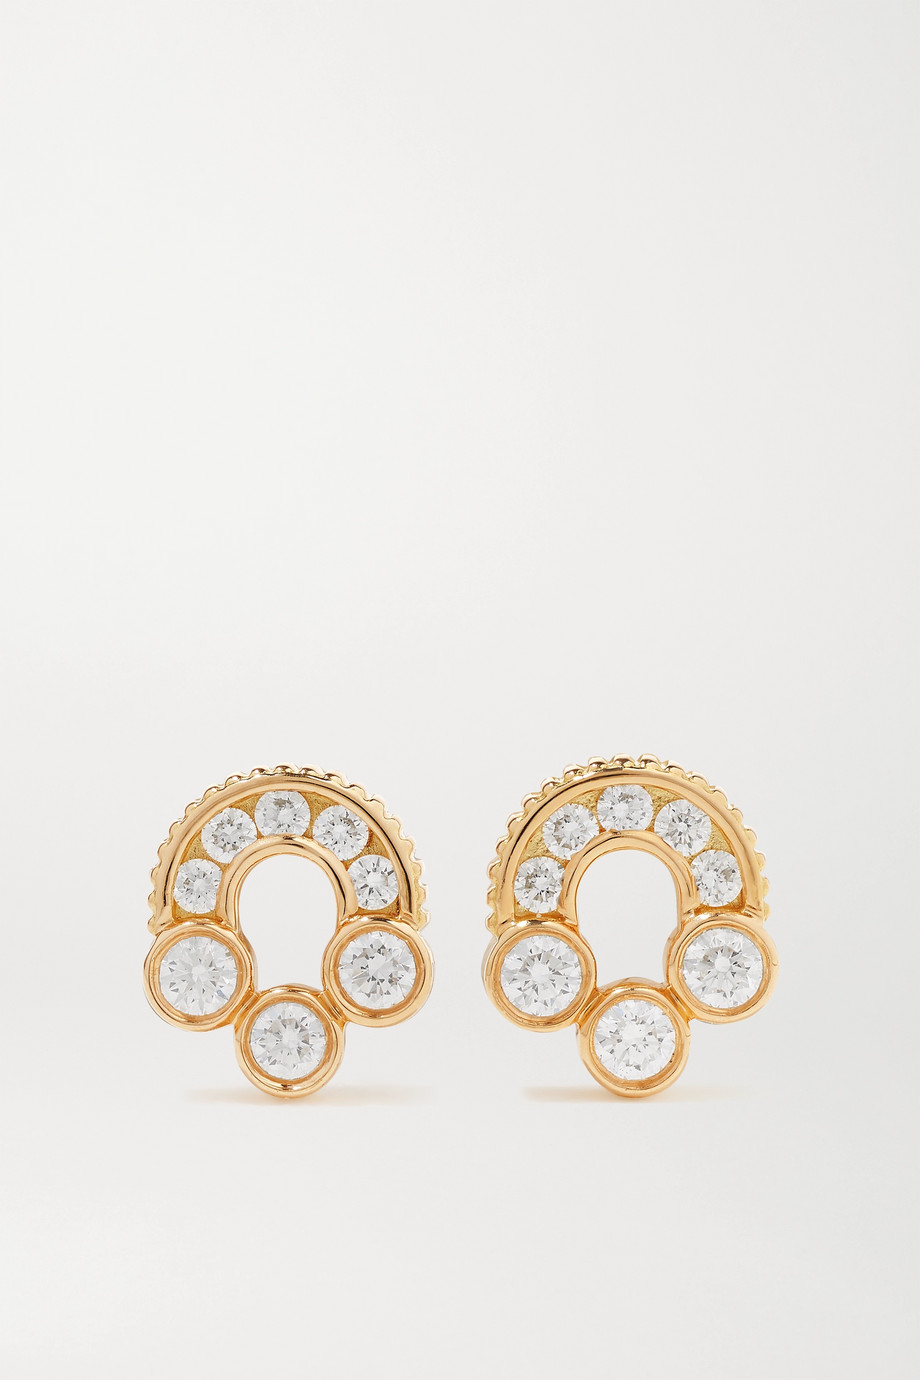 Viltier Boucles d'oreilles en or 18 carats et diamants Magnetic Studs - NET SUSTAIN